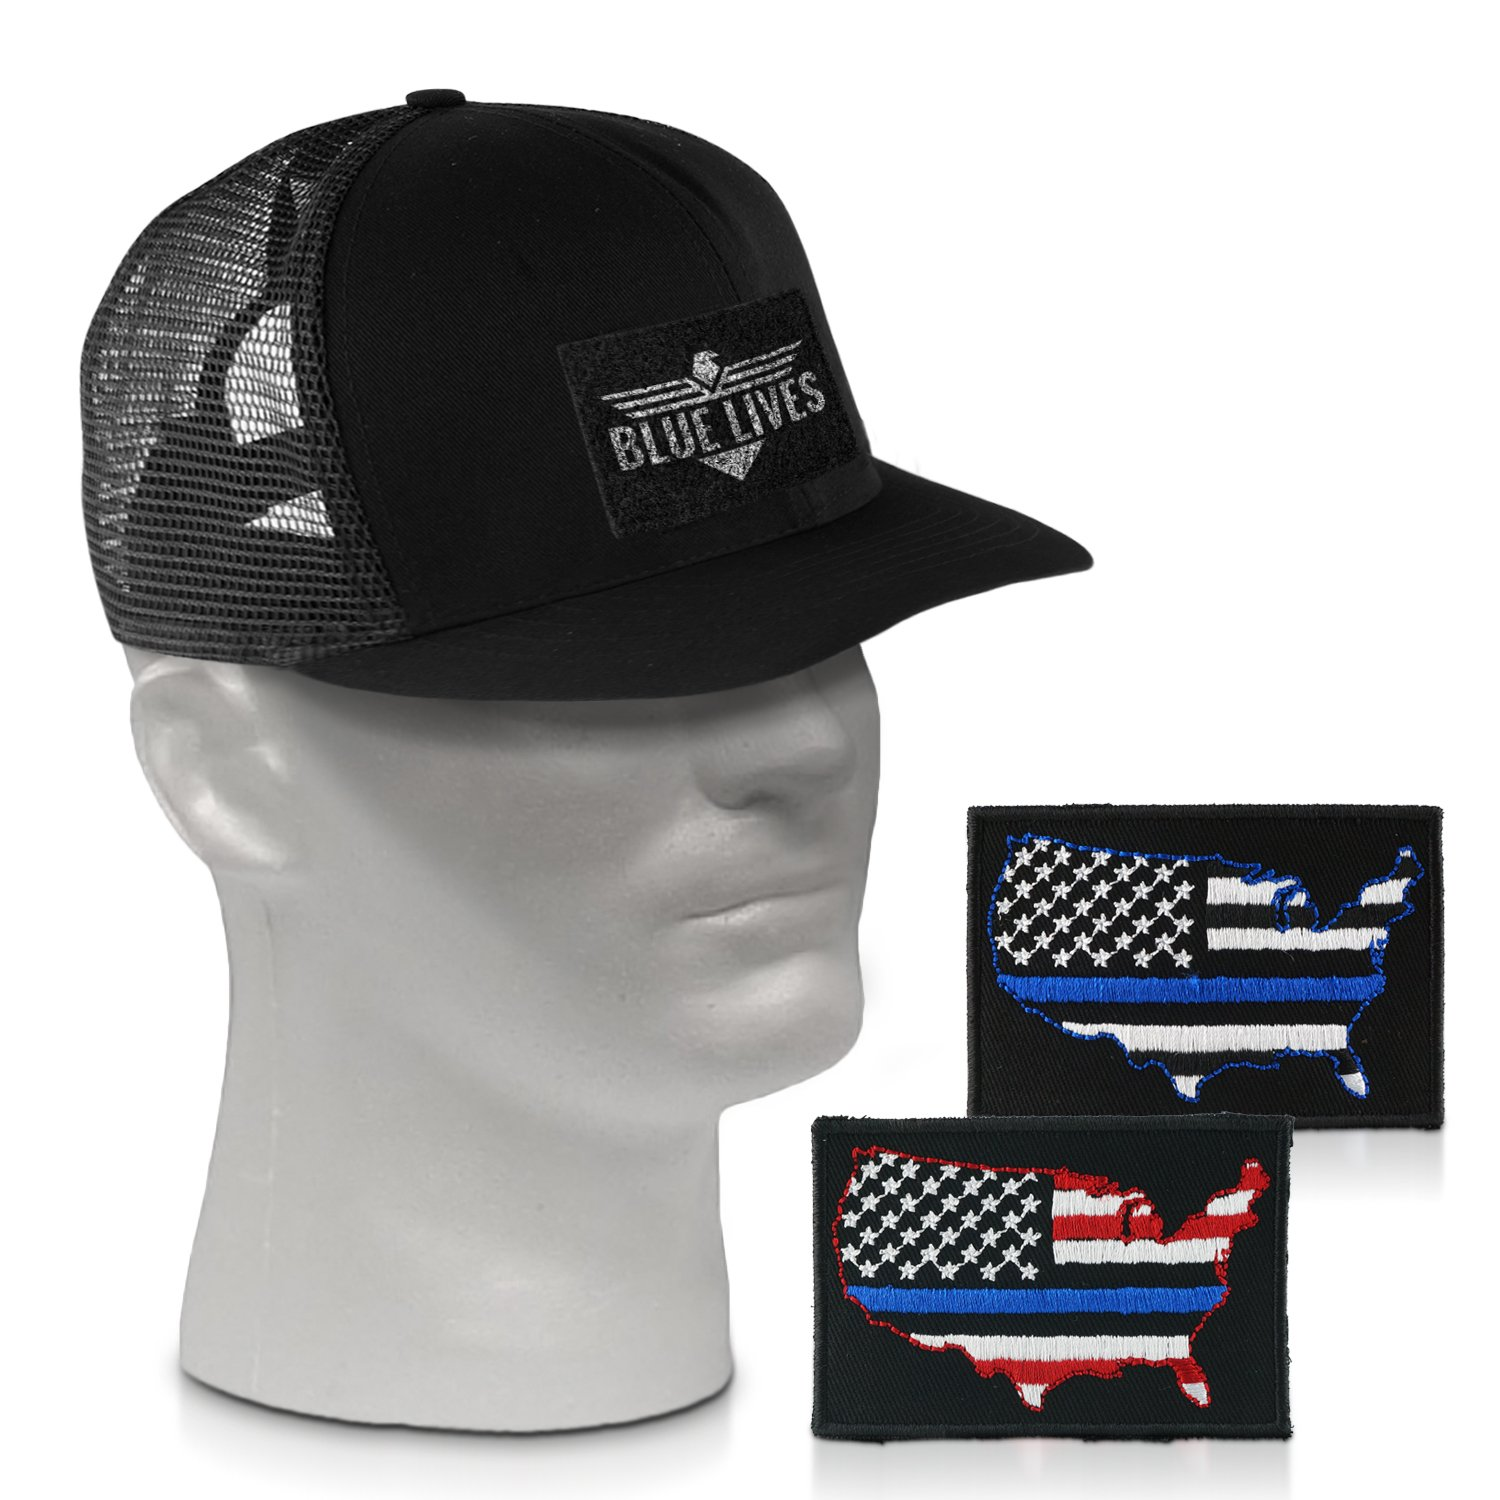 2b5ffa64dab03 Get Quotations · Blue Lives Matter Hat with 2 Thin Blue Line Patch